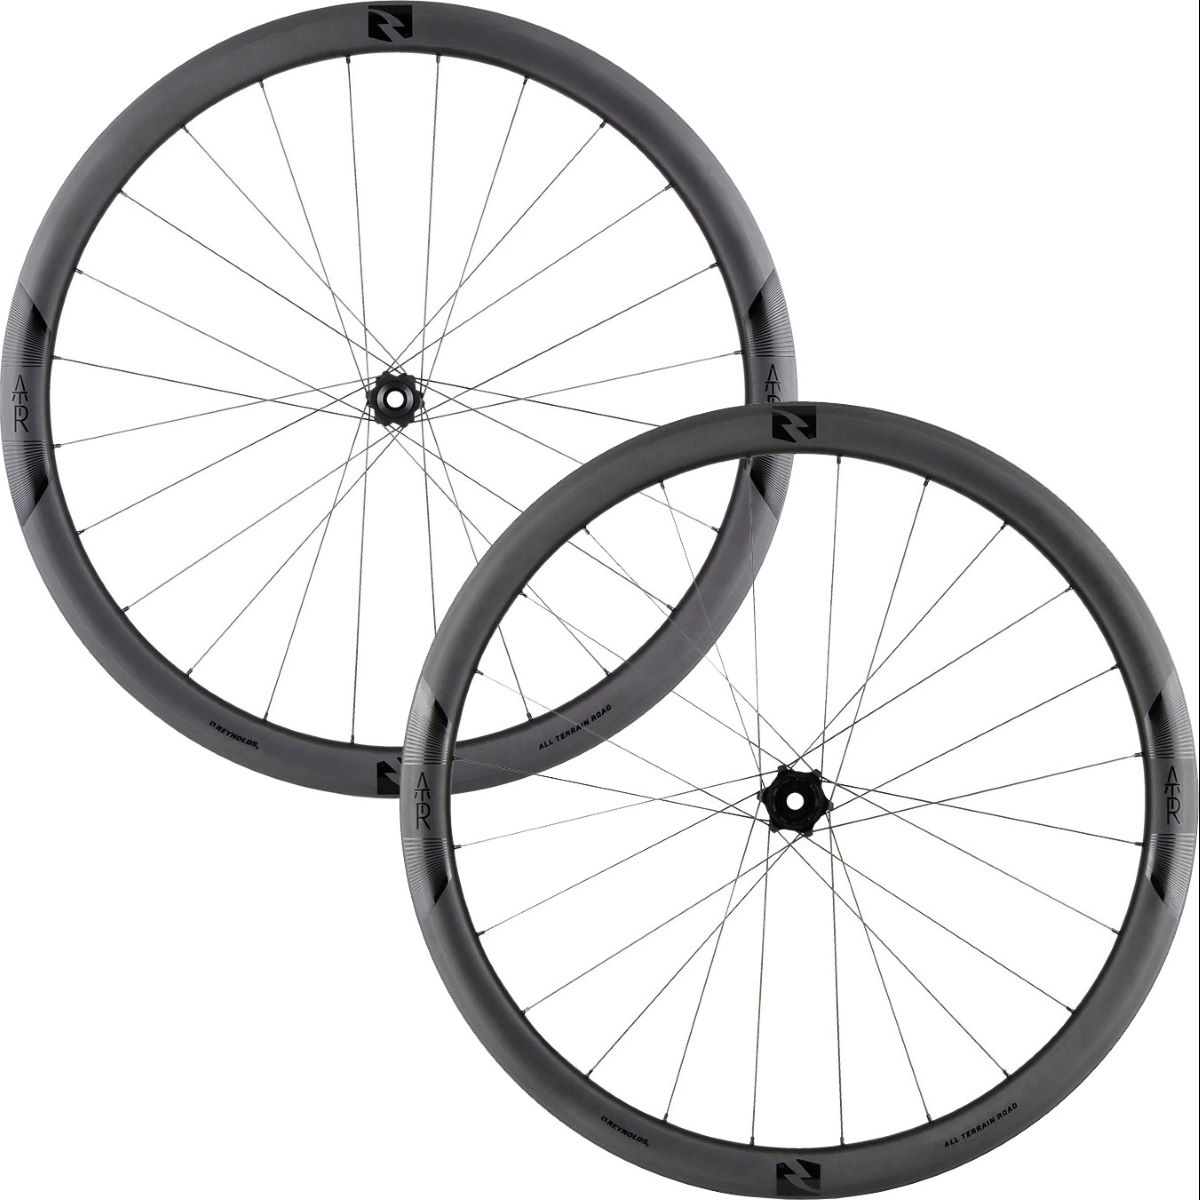 Reynolds Reynolds ATR x Carbon Disc Gravel Wheelset   Wheel Sets